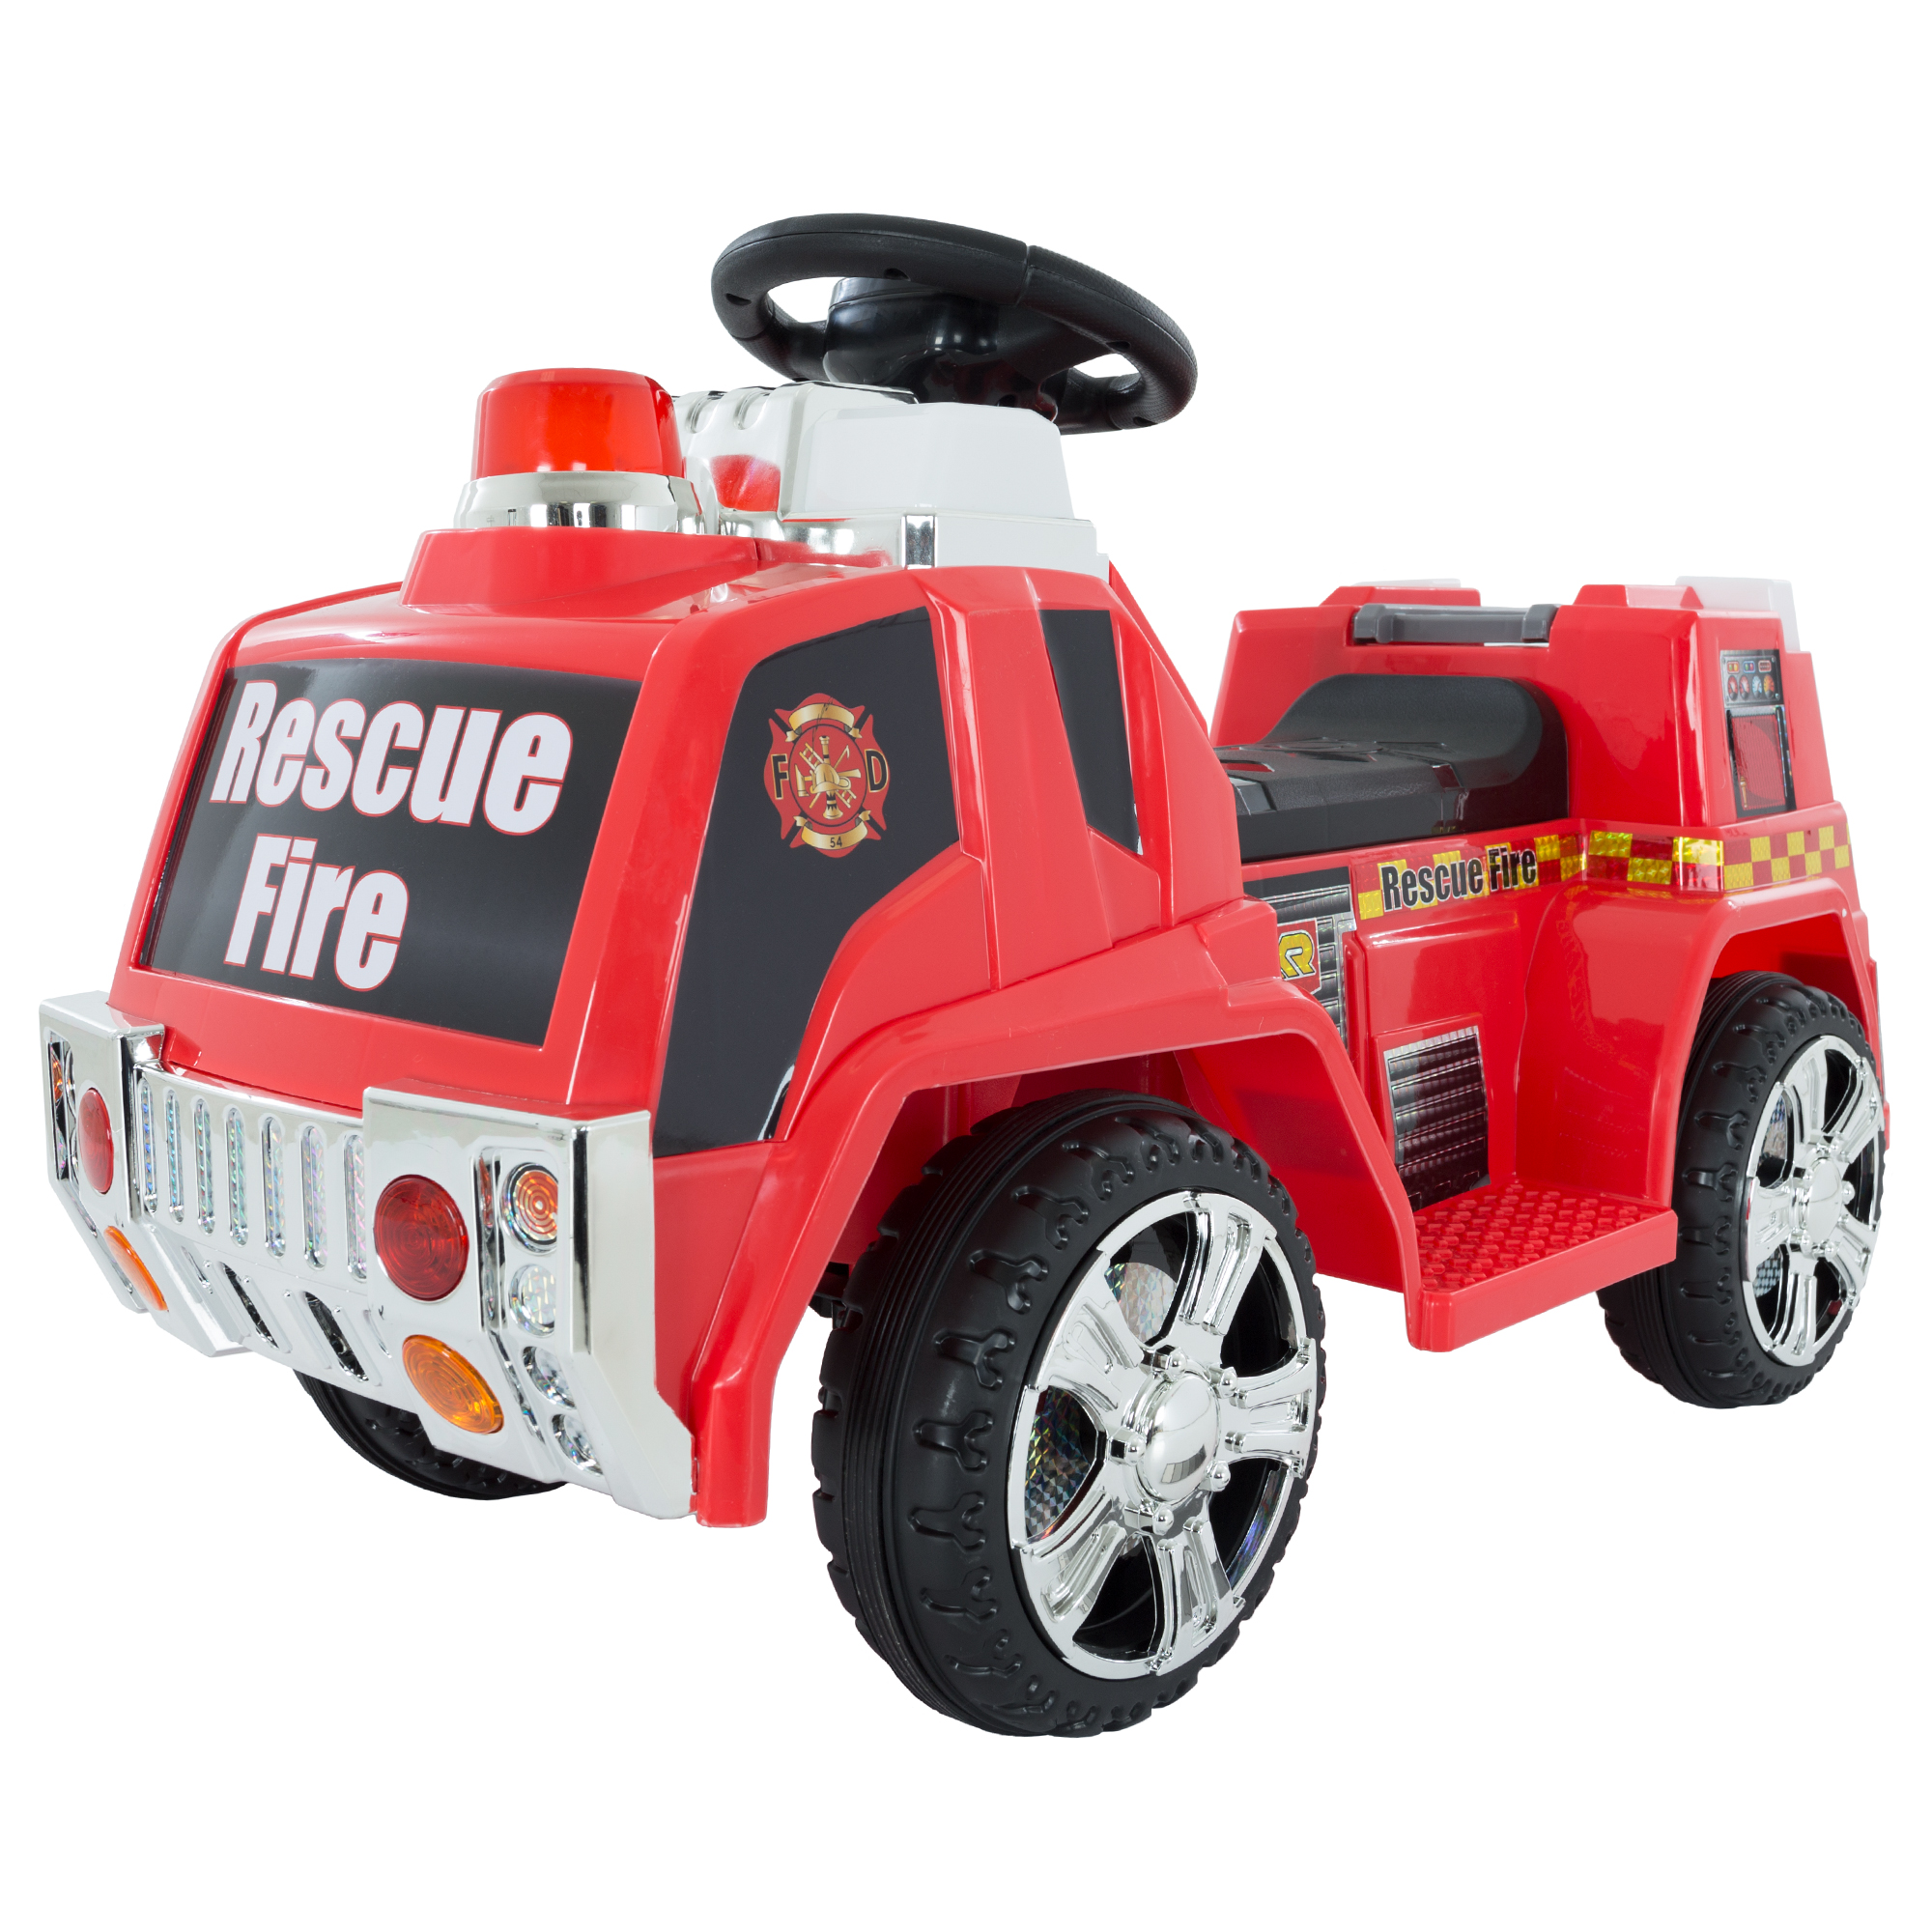 Ride on Toy, Fire Truck for Kids, Battery Powered Ride on Toy by Hey! Play! - Toys for Boys and Girls, Toddler - 5 Years Old